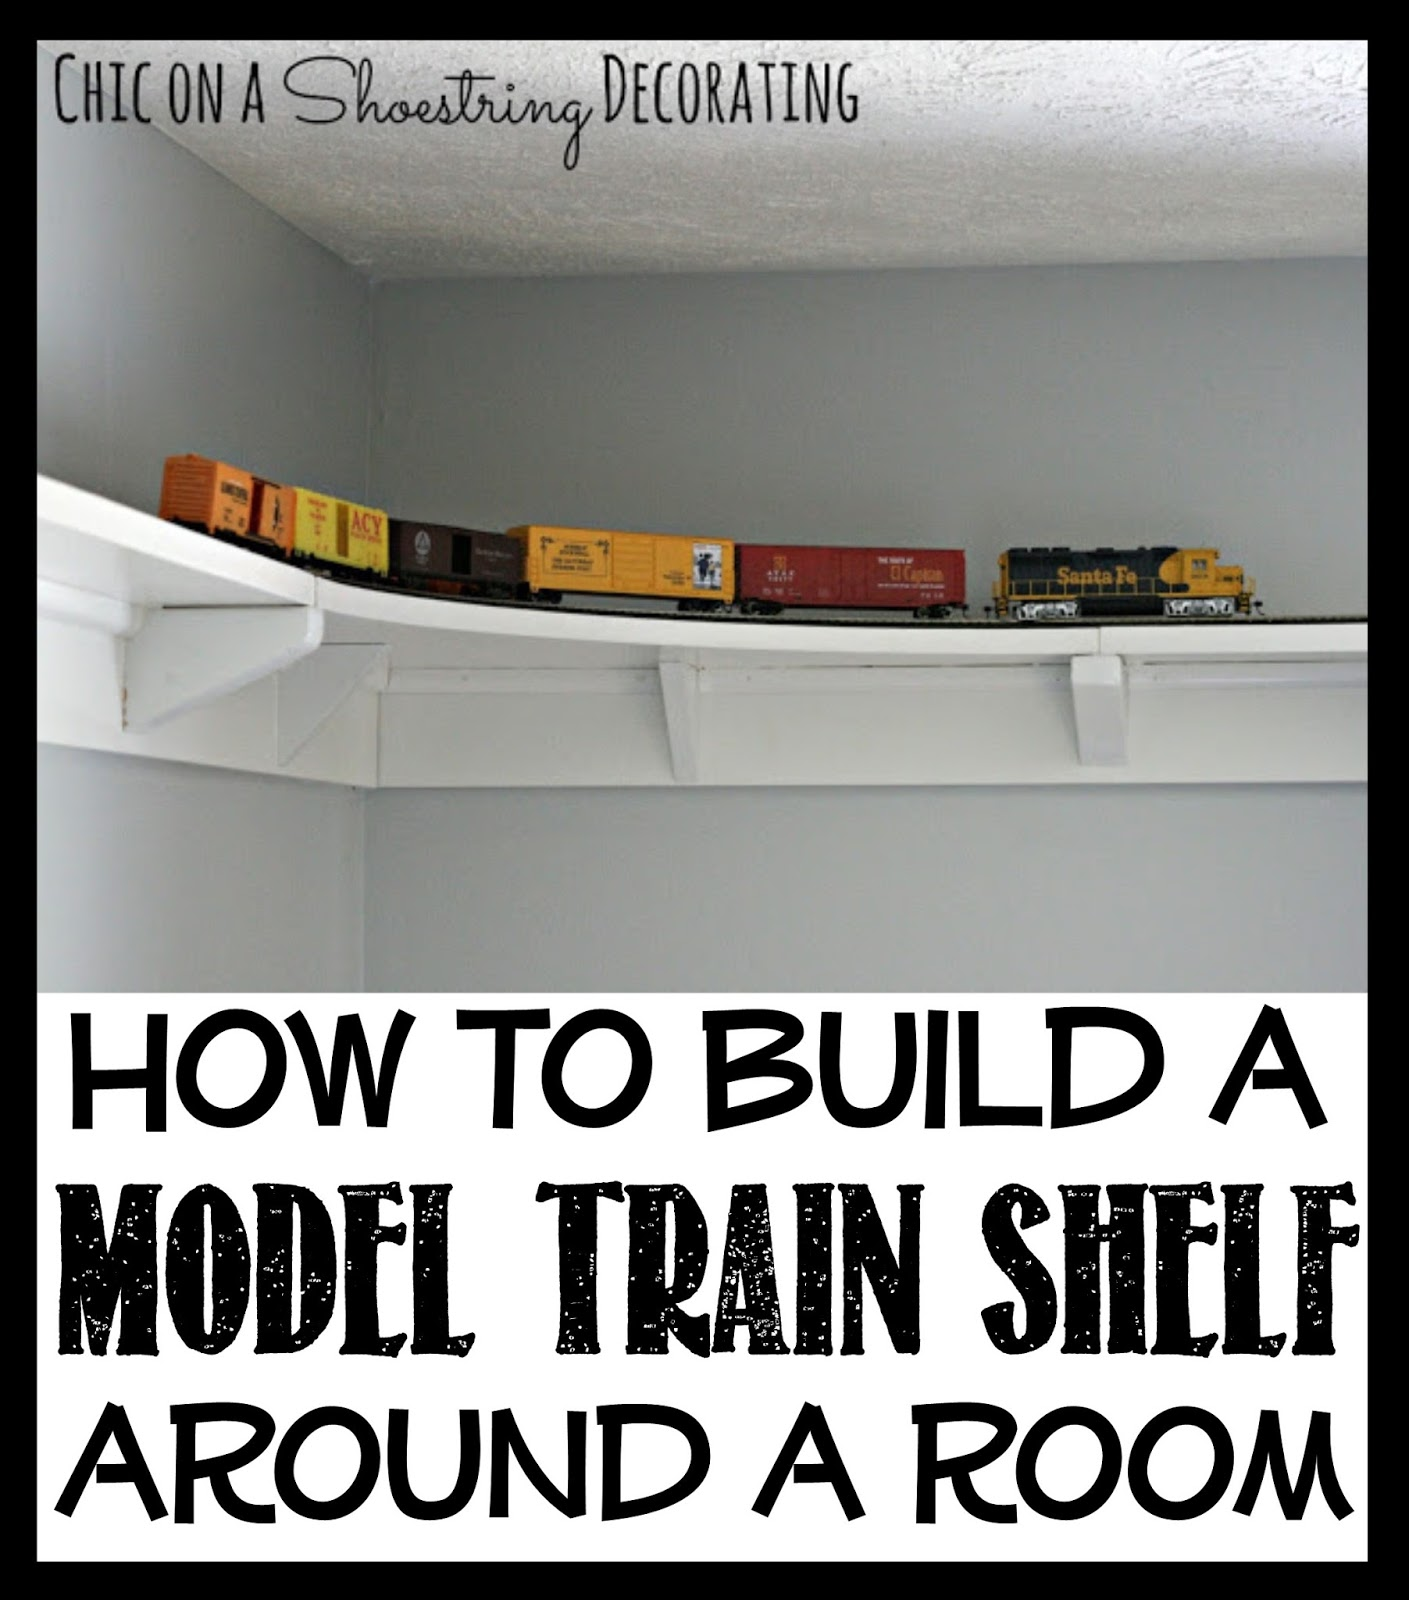 Chic On A Shoestring Decorating How To Build Train Shelf Around O Gauge Track Wiring Model Room